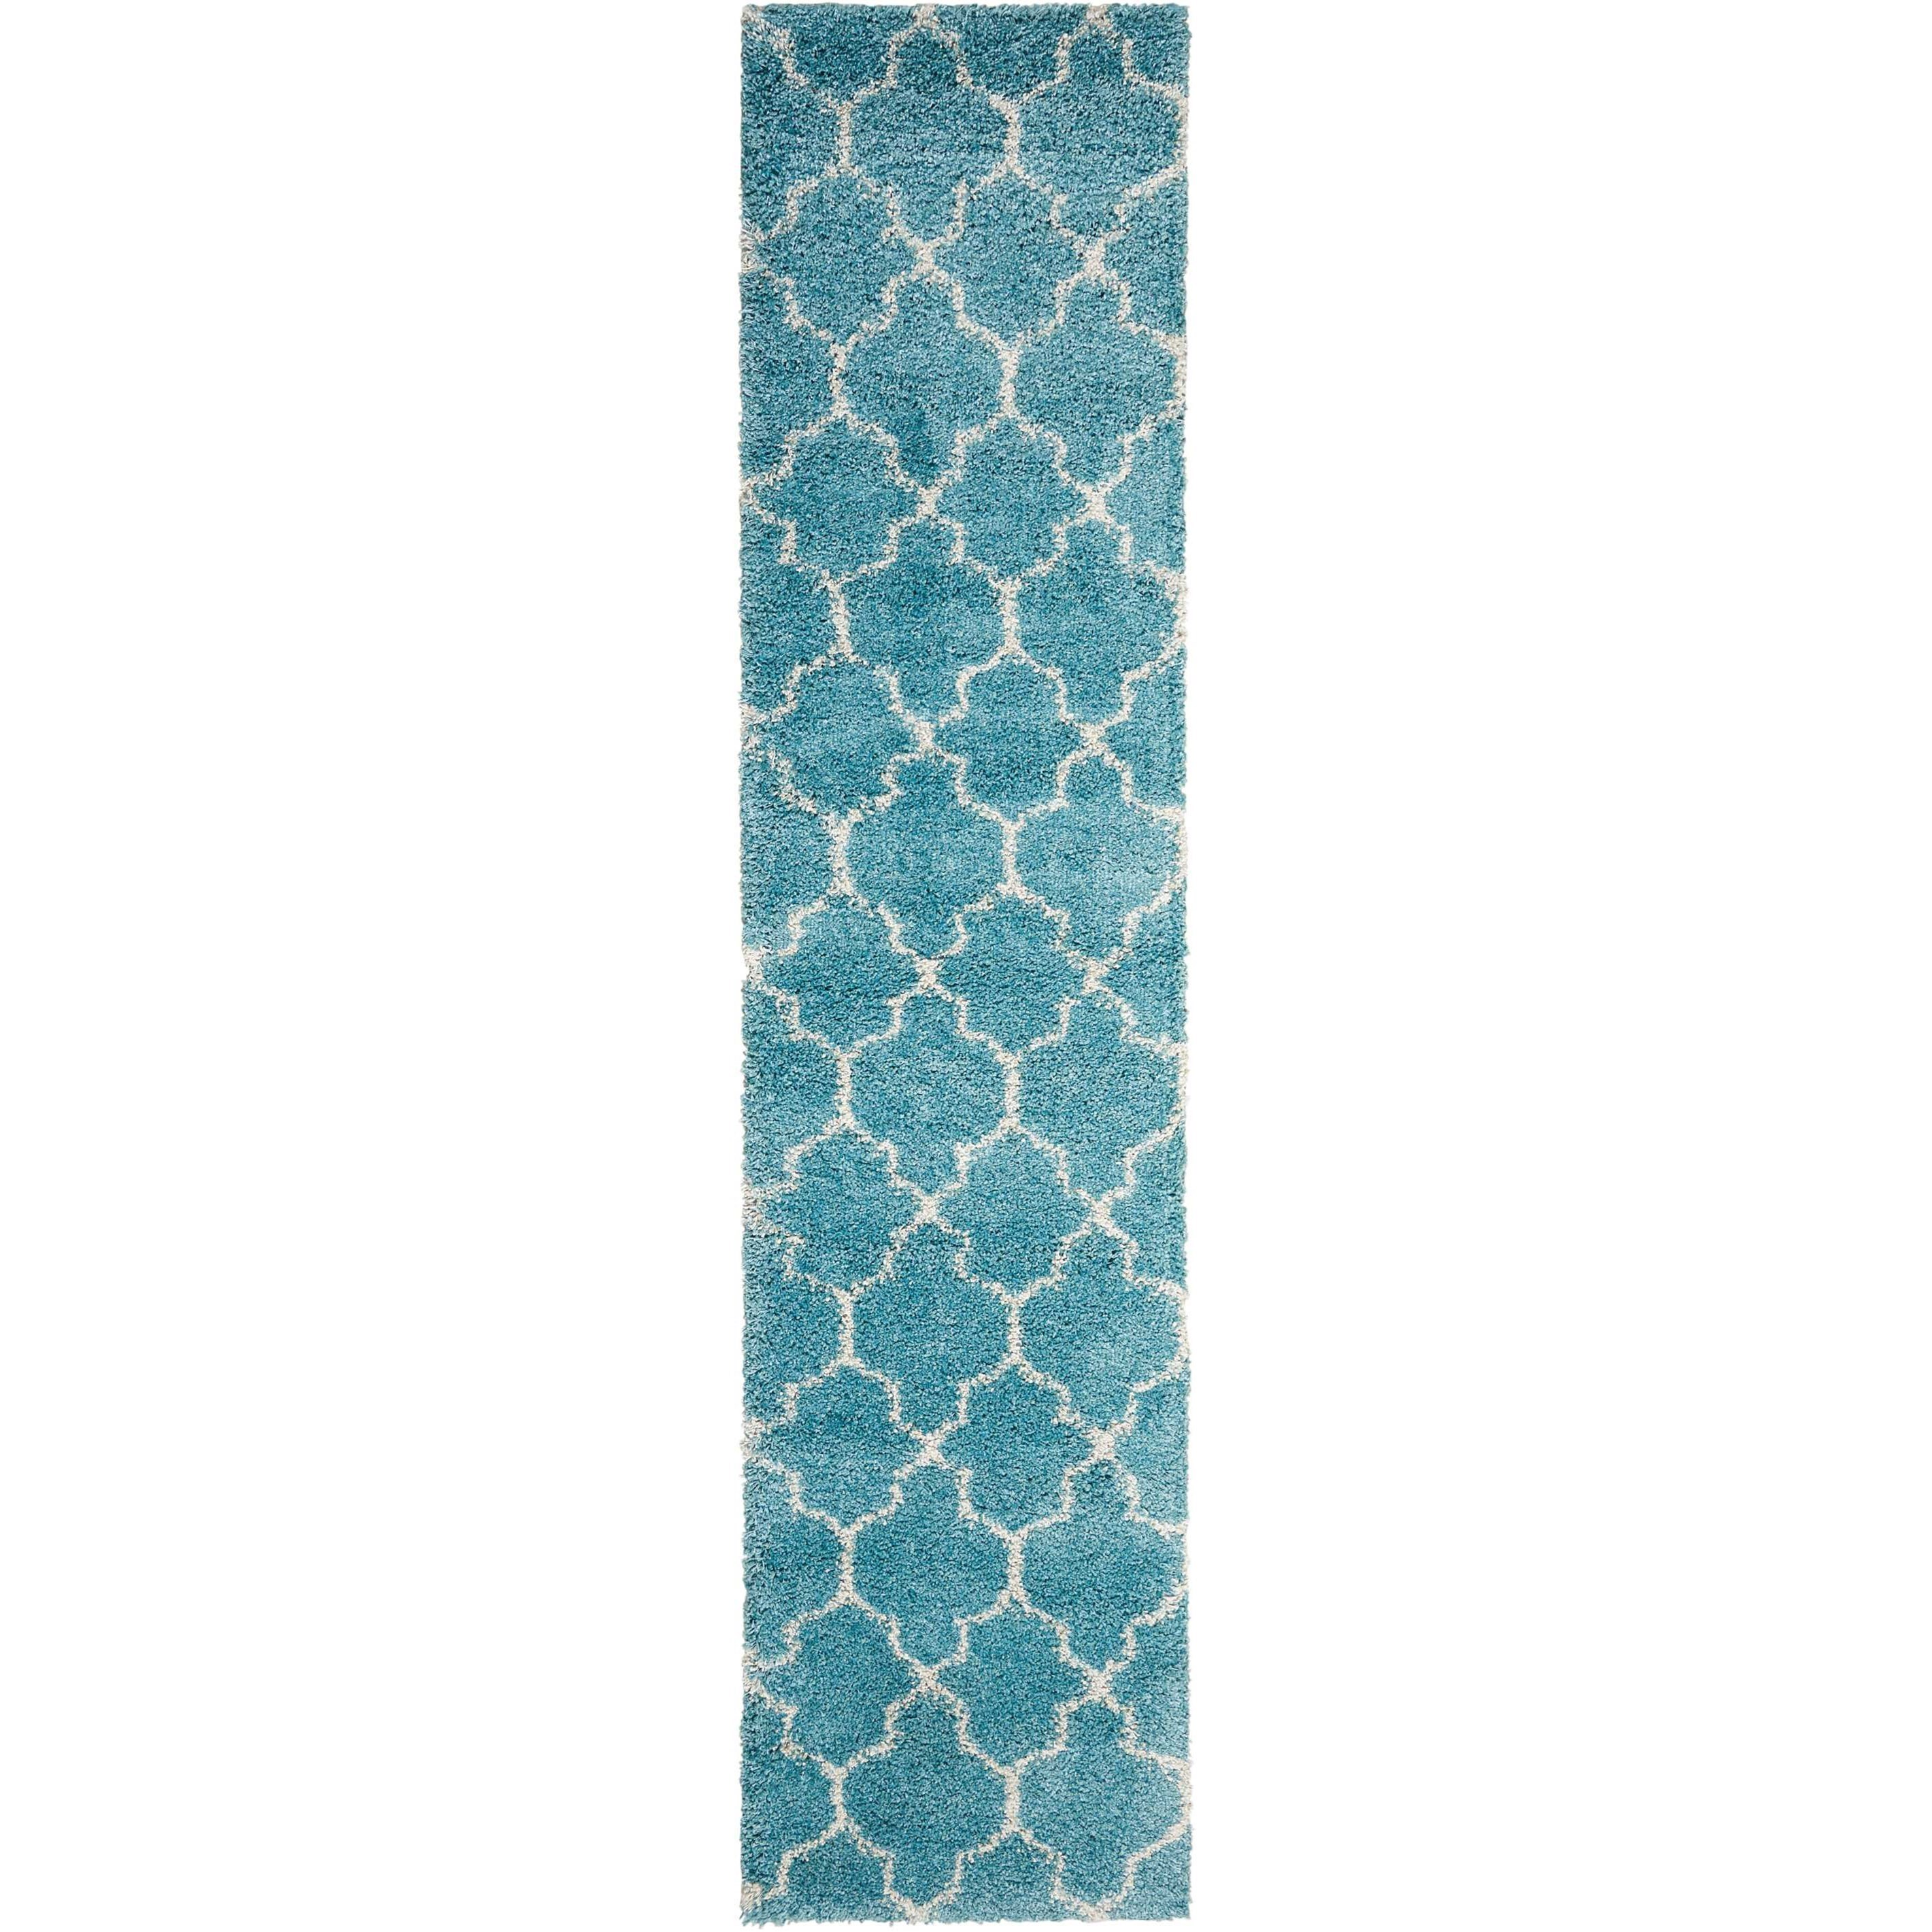 Amore Amore AMOR2 Blue 8' Runner  Hallway Rug by Nourison at Home Collections Furniture